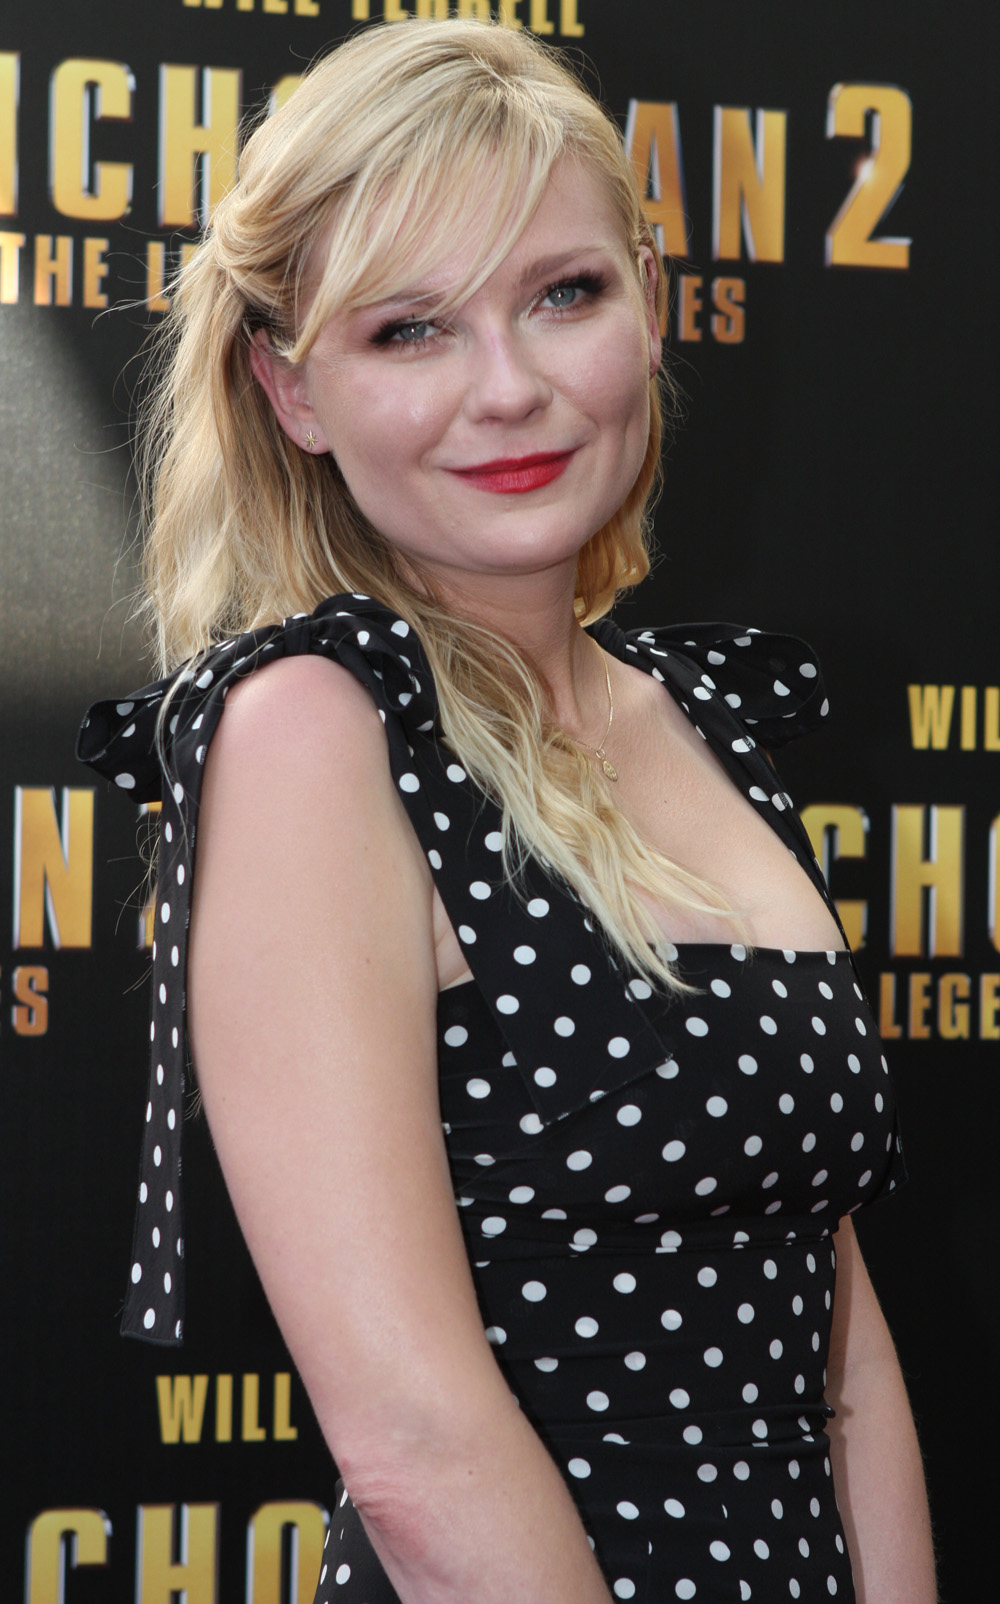 https://upload.wikimedia.org/wikipedia/commons/7/74/Kirsten_Dunst_3_2013.jpg